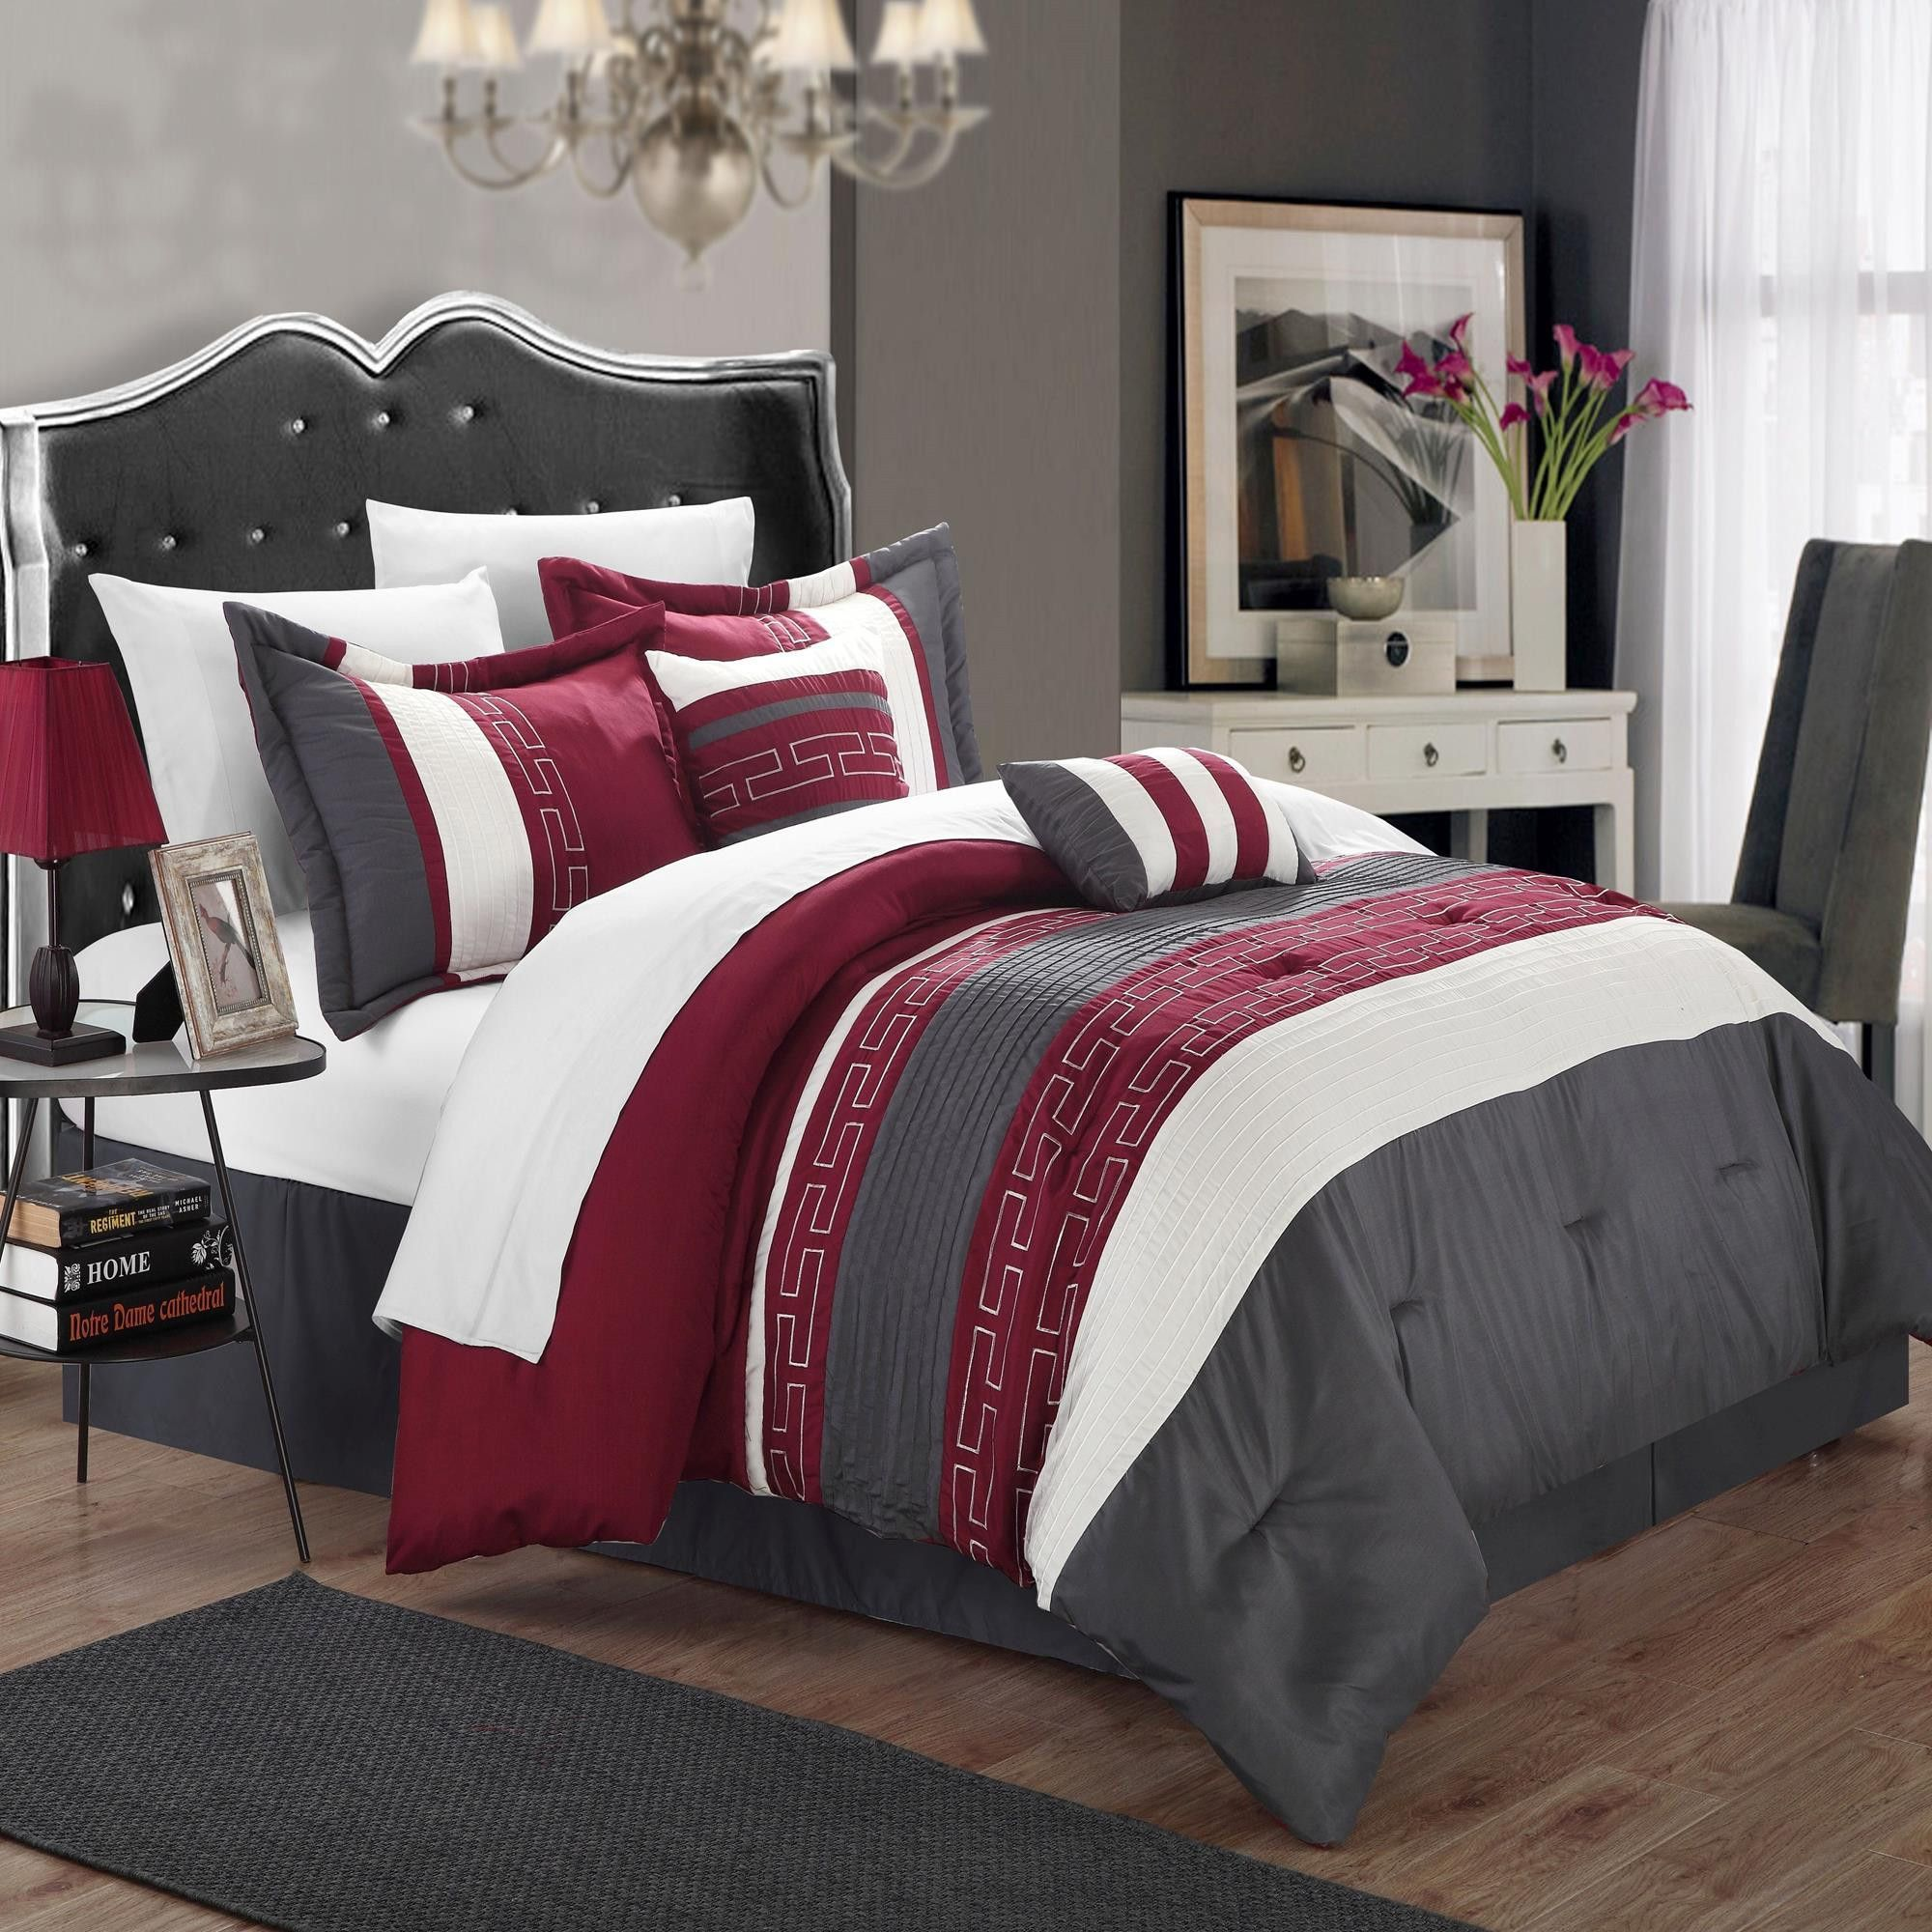 quilt pines pdx set merlot reversible bath wayfair burgundy festive dada bedding reviews bed comforter